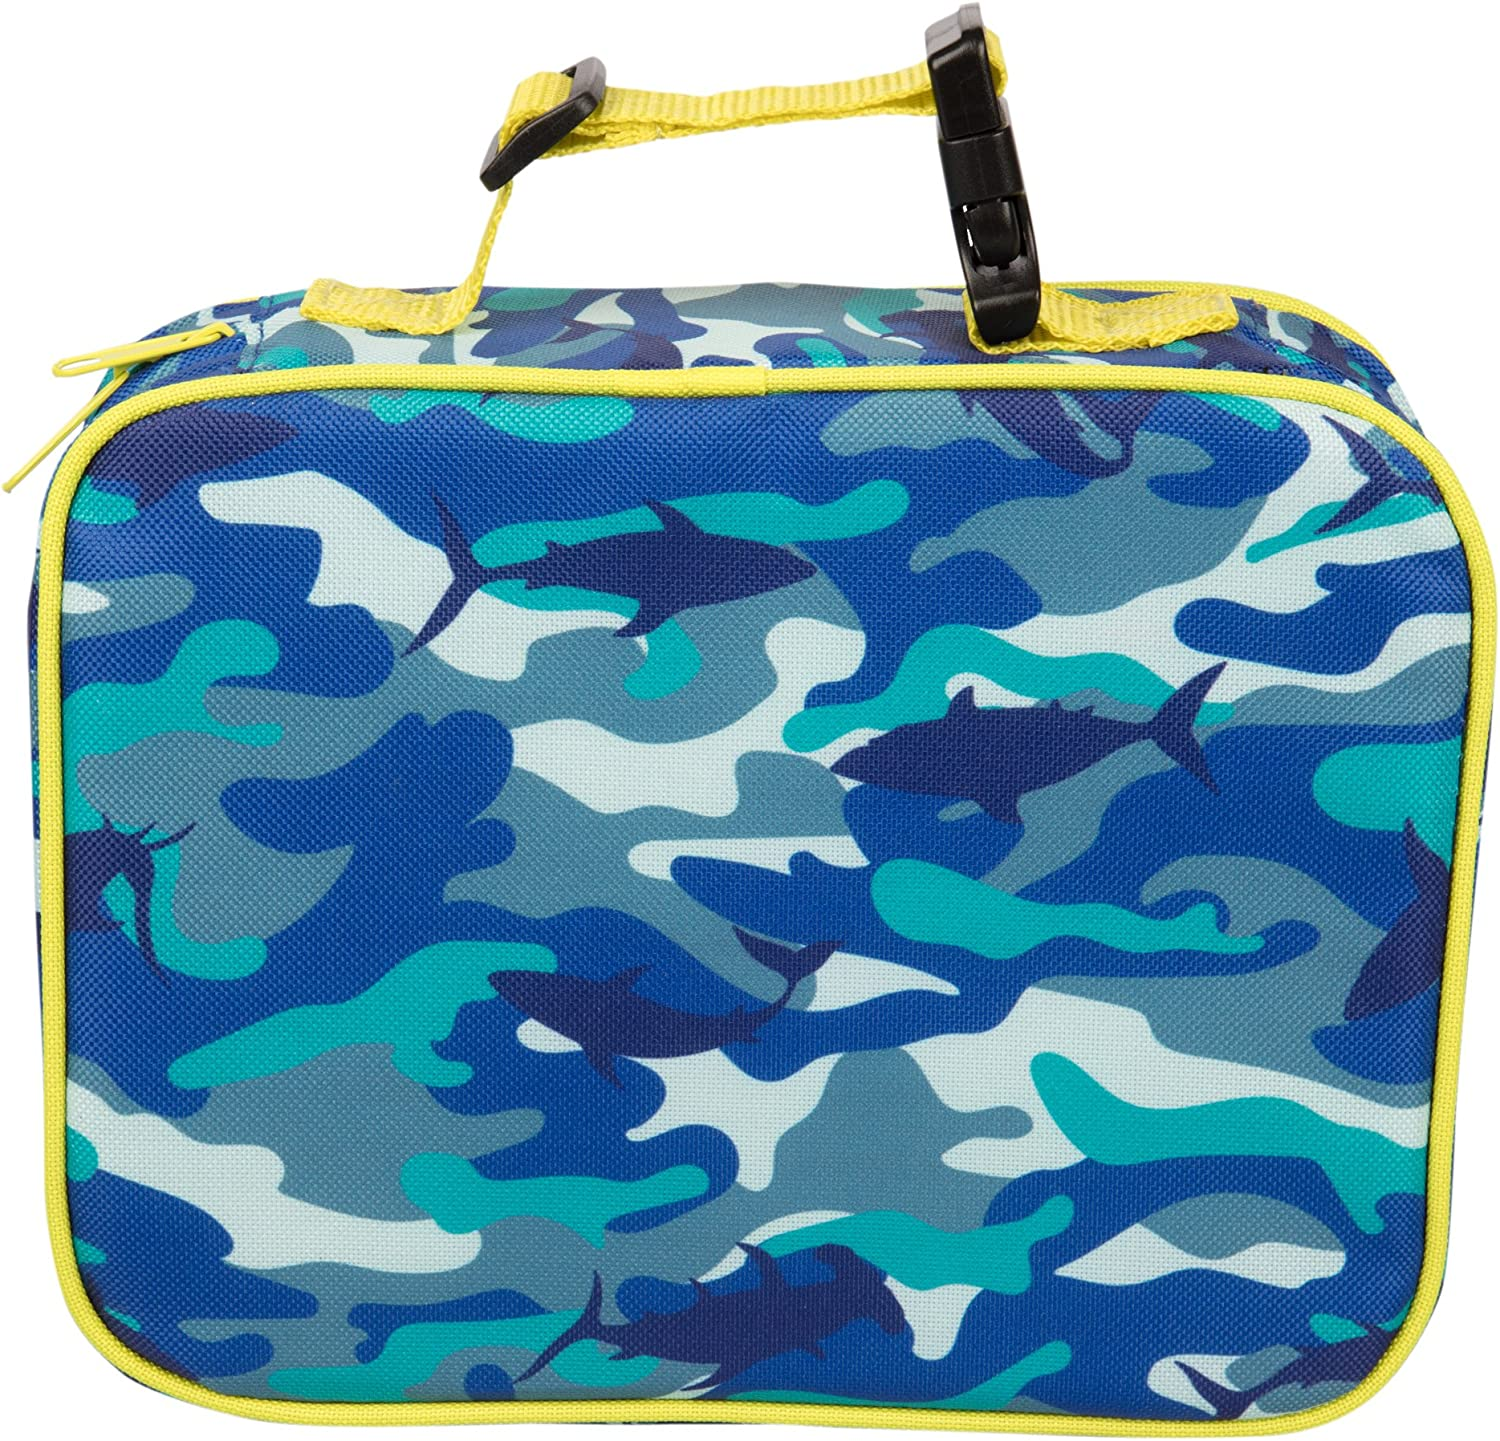 """Insulated Durable Lunch Box Sleeve - Reusable Lunch Bag - Securely Cover Your Bento Box, Works with Bentology Bento Box, Bentgo, Kinsho, Yumbox (8""""x10""""x3"""") - Camo"""